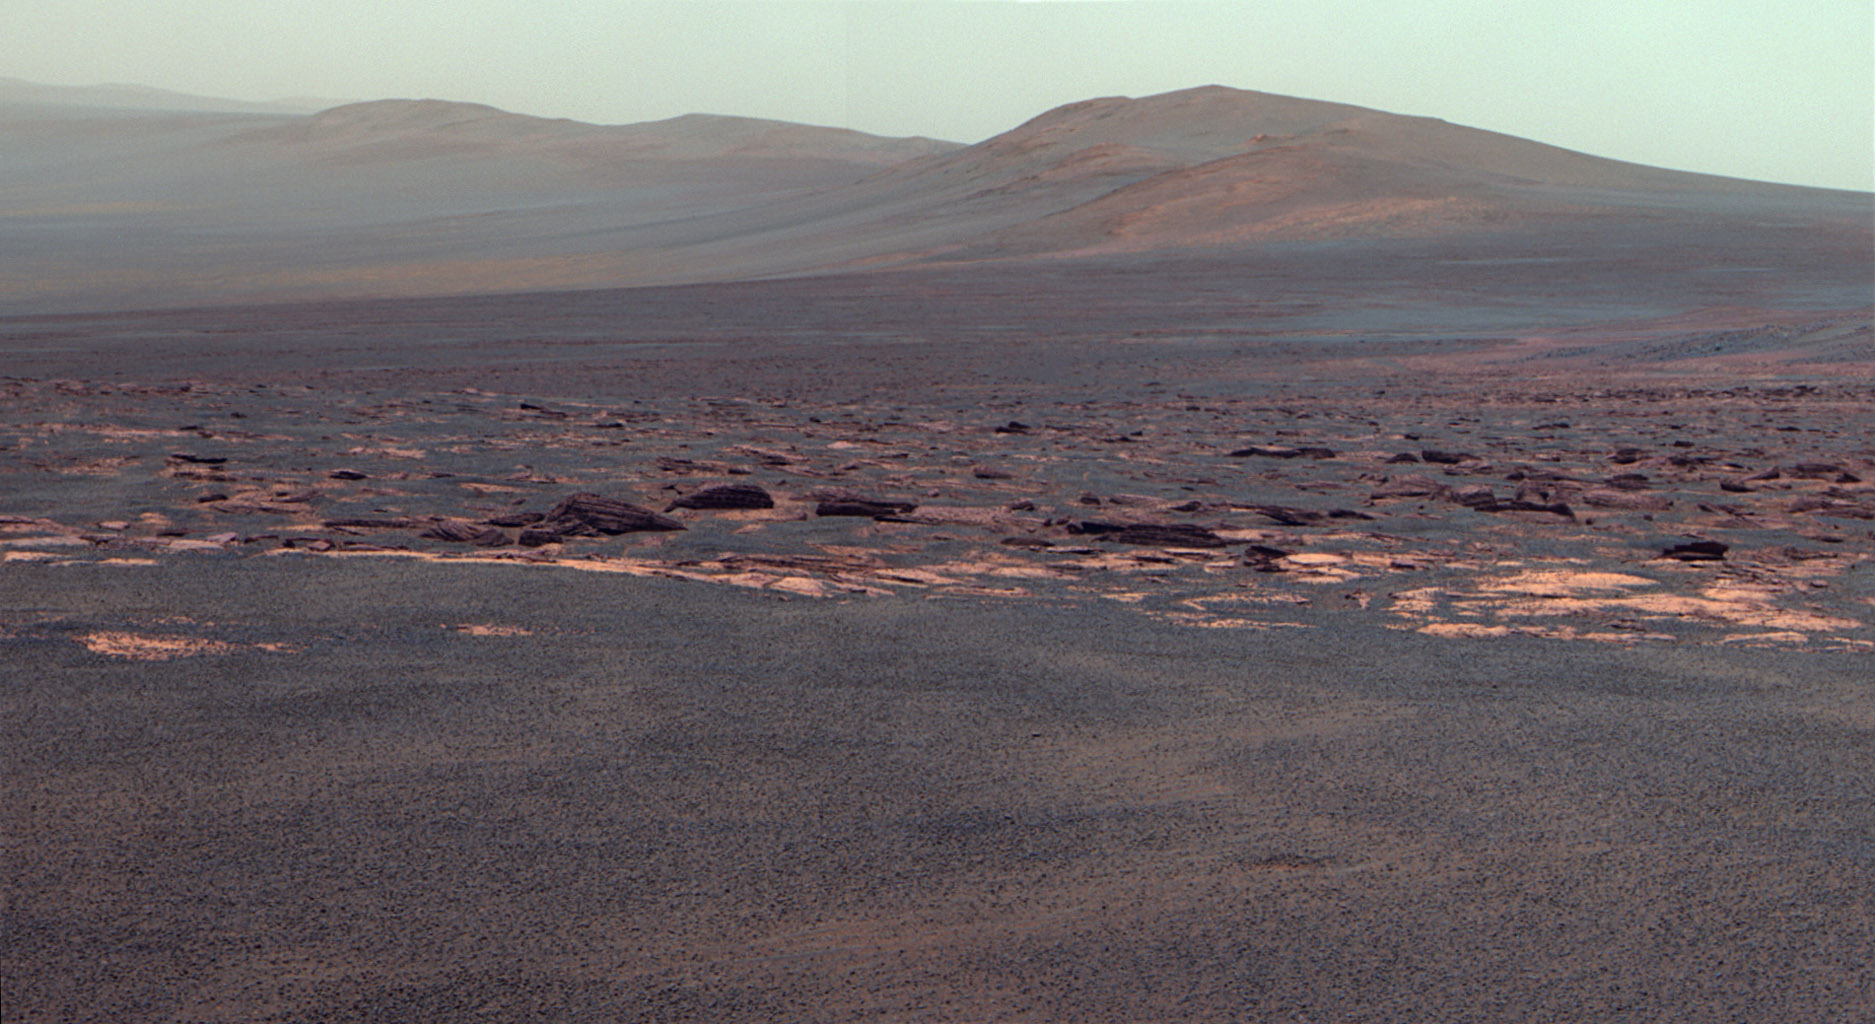 A portion of the west rim of Endeavour crater sweeps southward in this image from NASA's Mars Exploration Rover Opportunity. The view is presented in false color to emphasize differences among materials in the rocks and the soils.